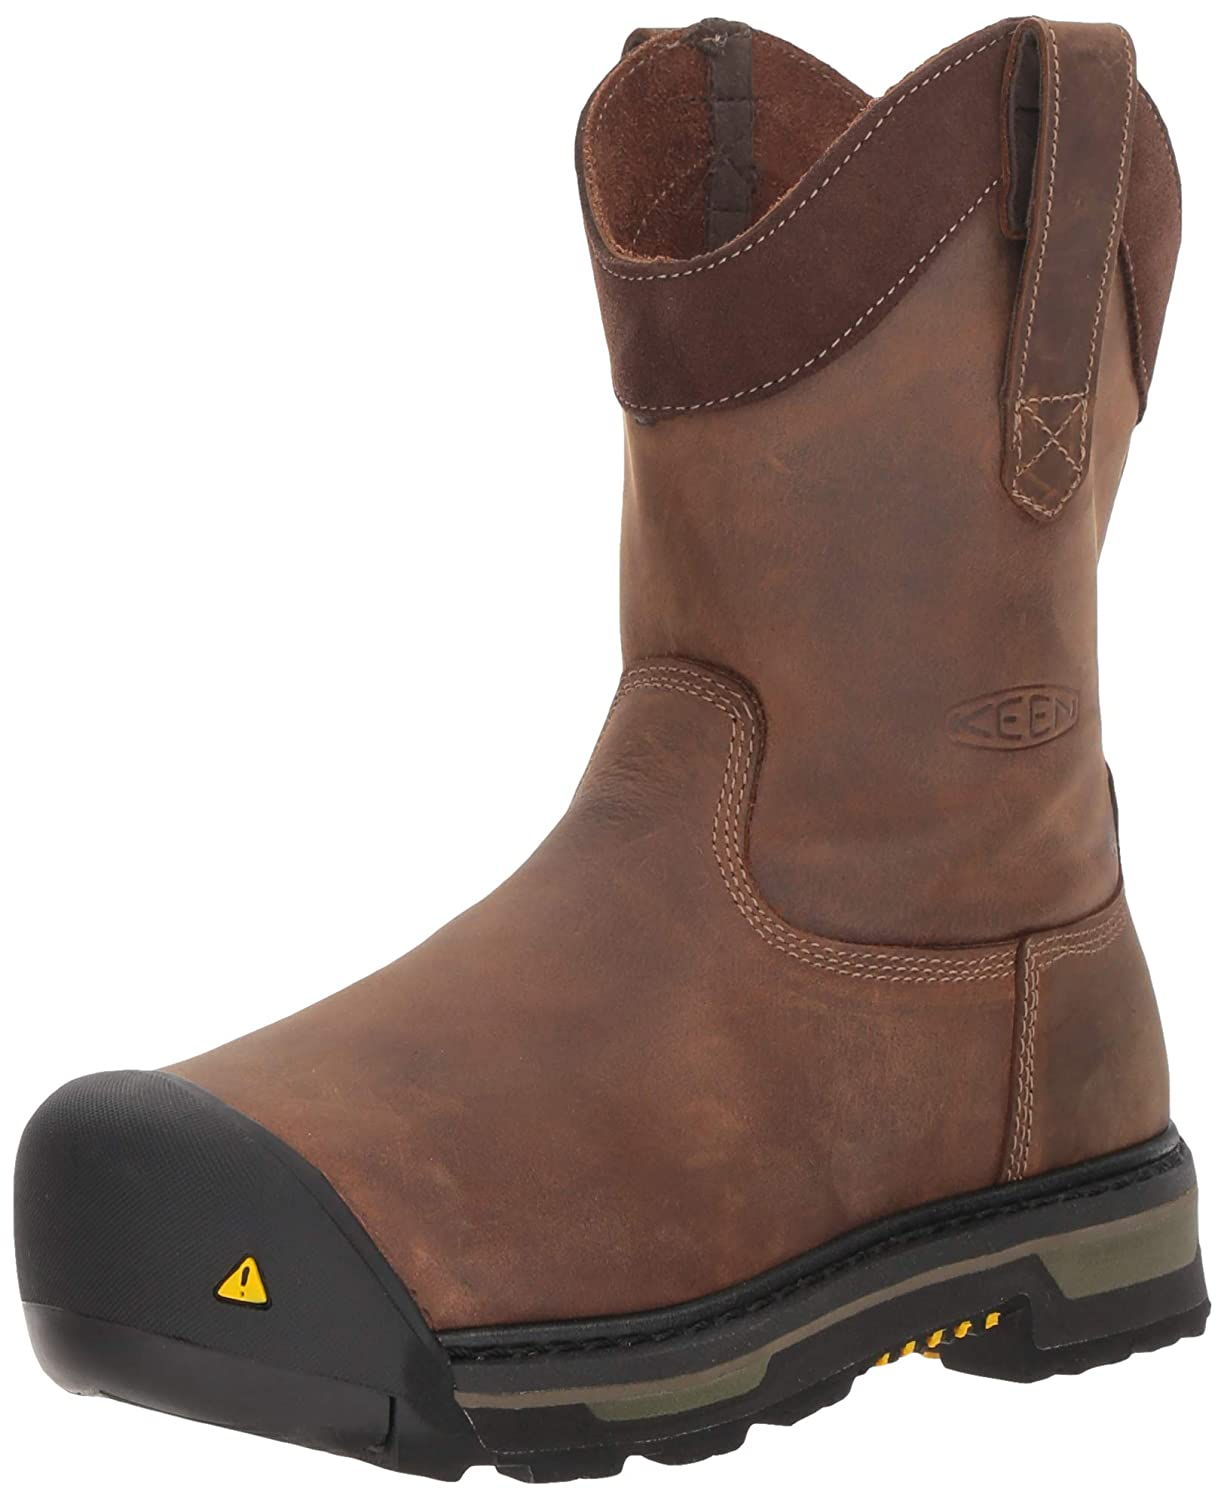 ed5400f51e4 KEEN Utility Men's Oakland Wellington Industrial Boot